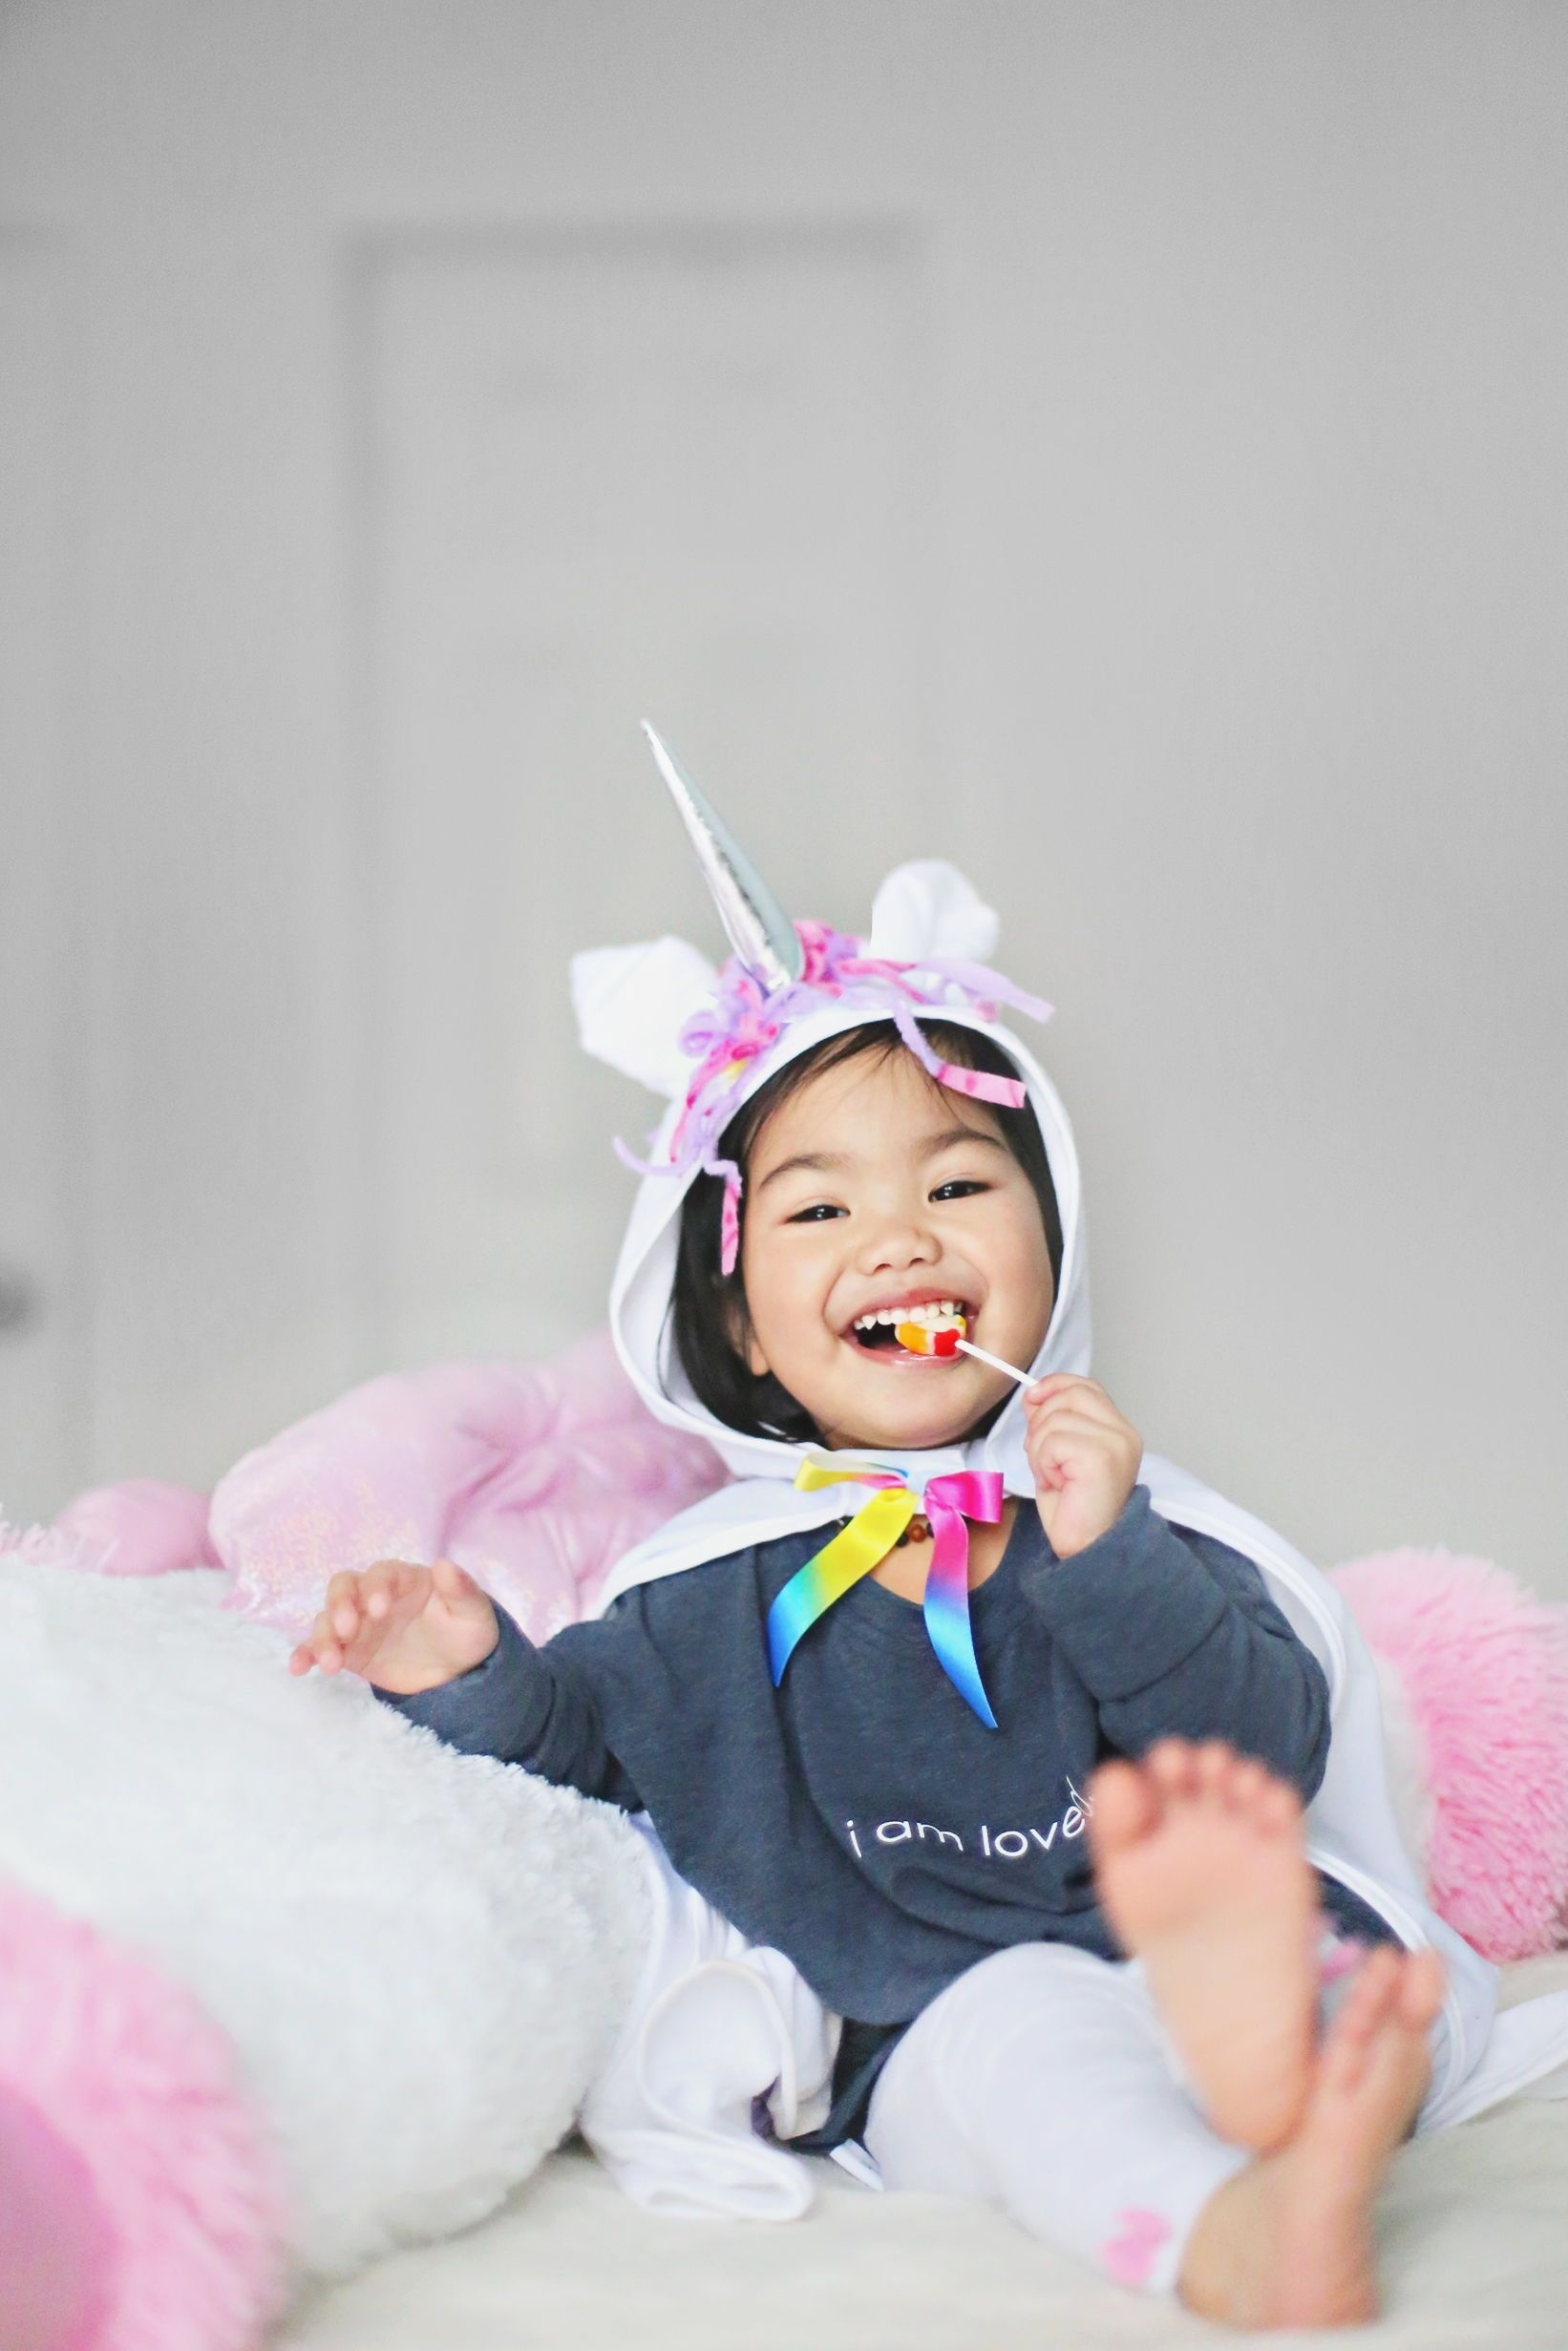 Check Out The More Like This: Unicorn Party, Unicorn Birthday, Pretend Play